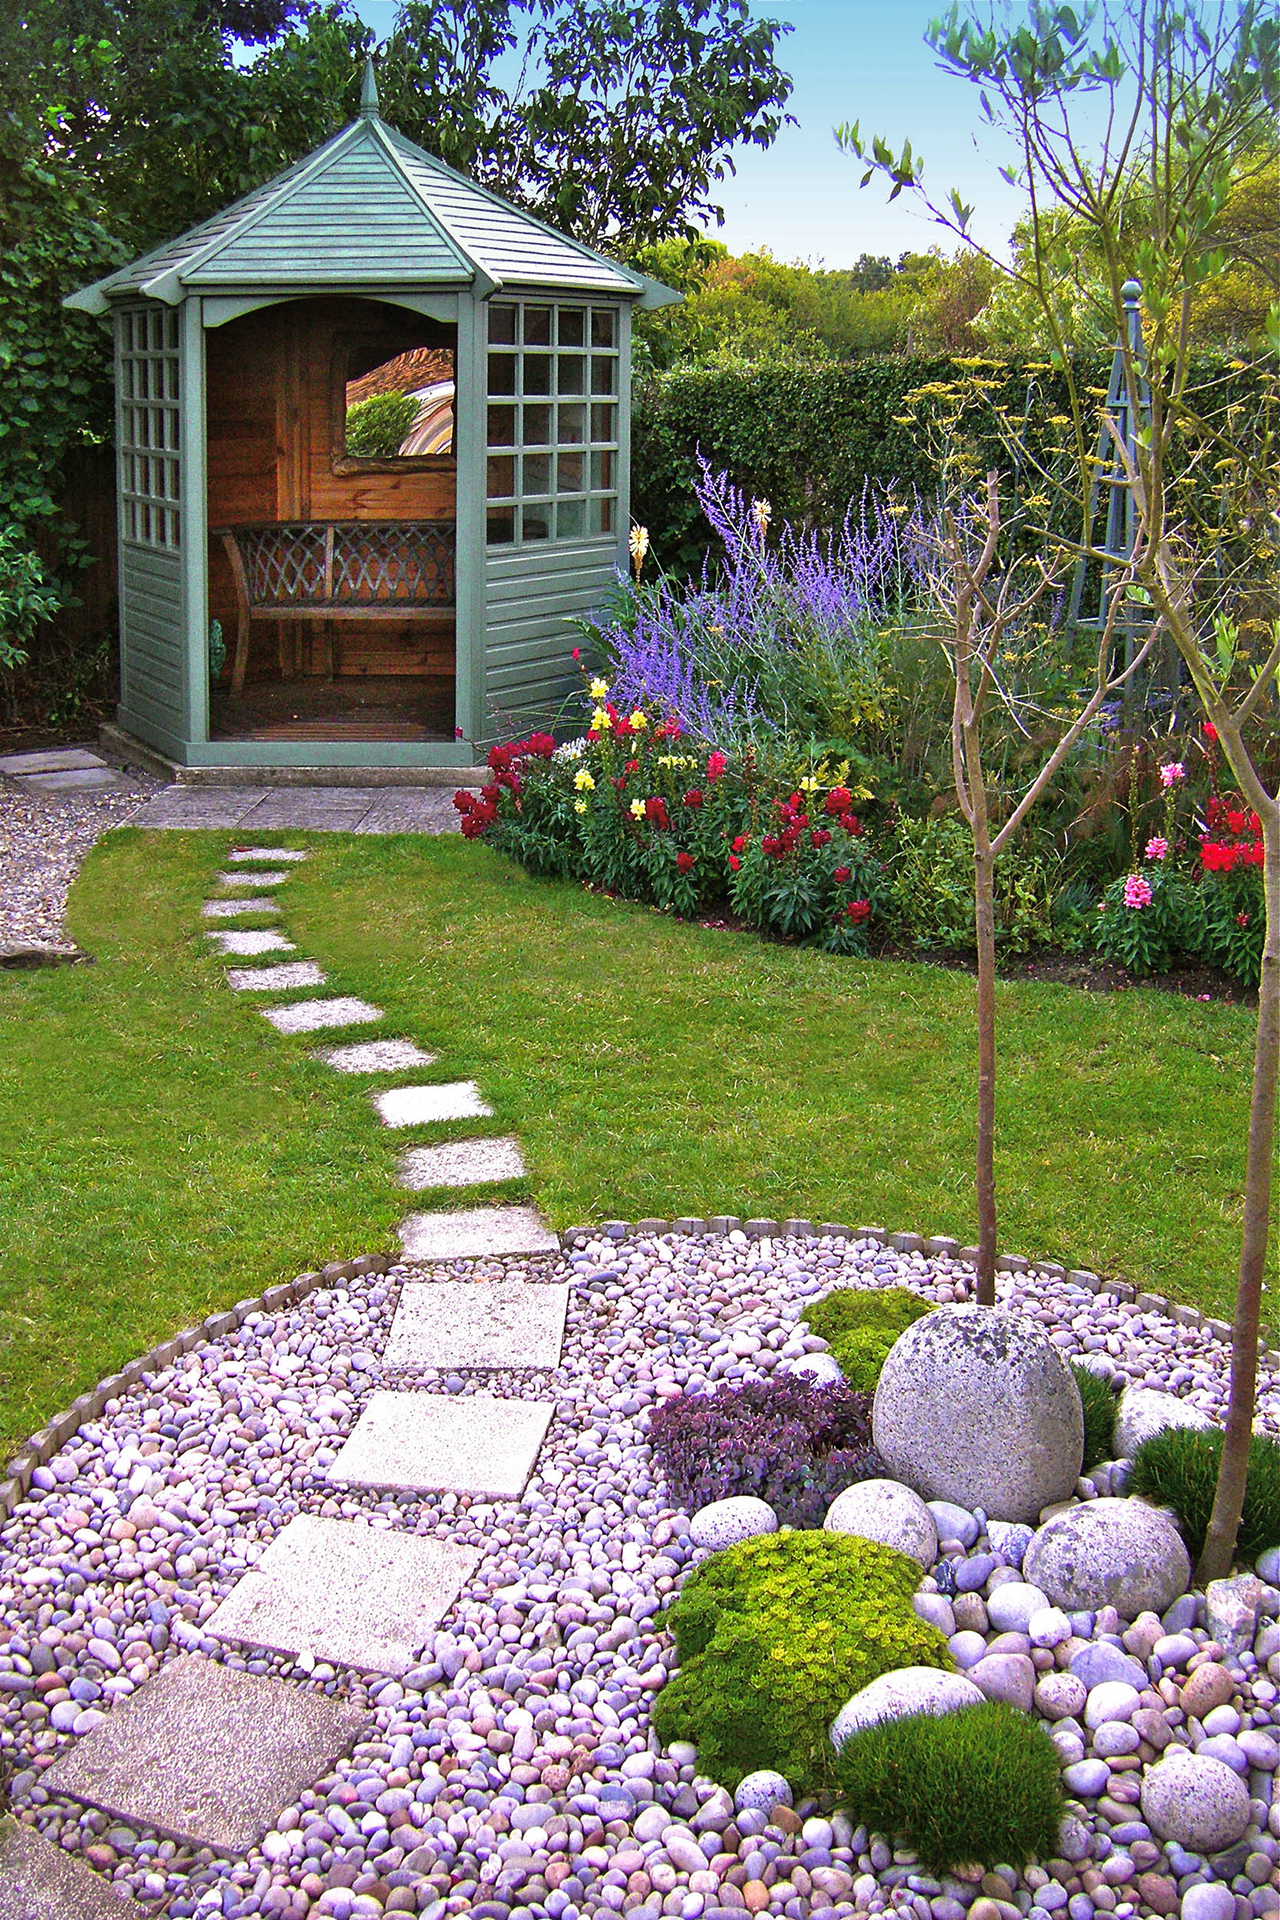 50 Best Backyard Landscaping Ideas And Designs In 2019 throughout 15 Some of the Coolest Ideas How to Makeover Landscaping Ideas Backyard